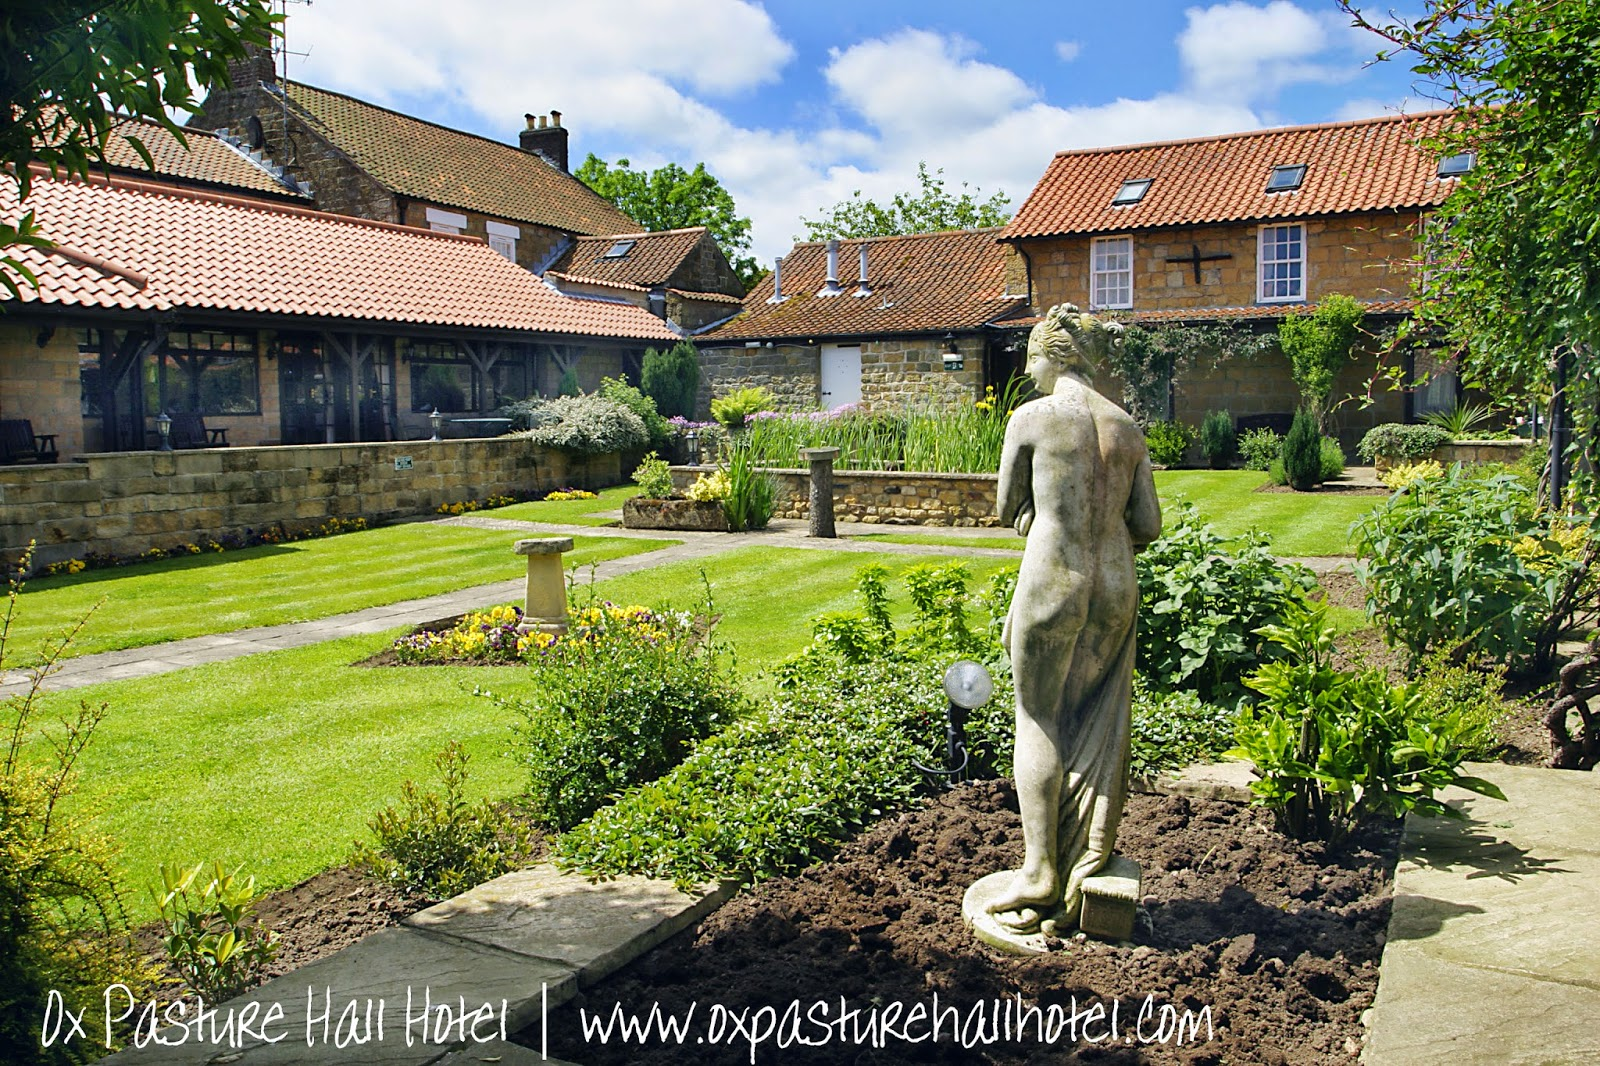 Ox Pasture Hall Hotel: for weddings, civil ceremonies & conferences | Anyonita-nibbles.co.uk